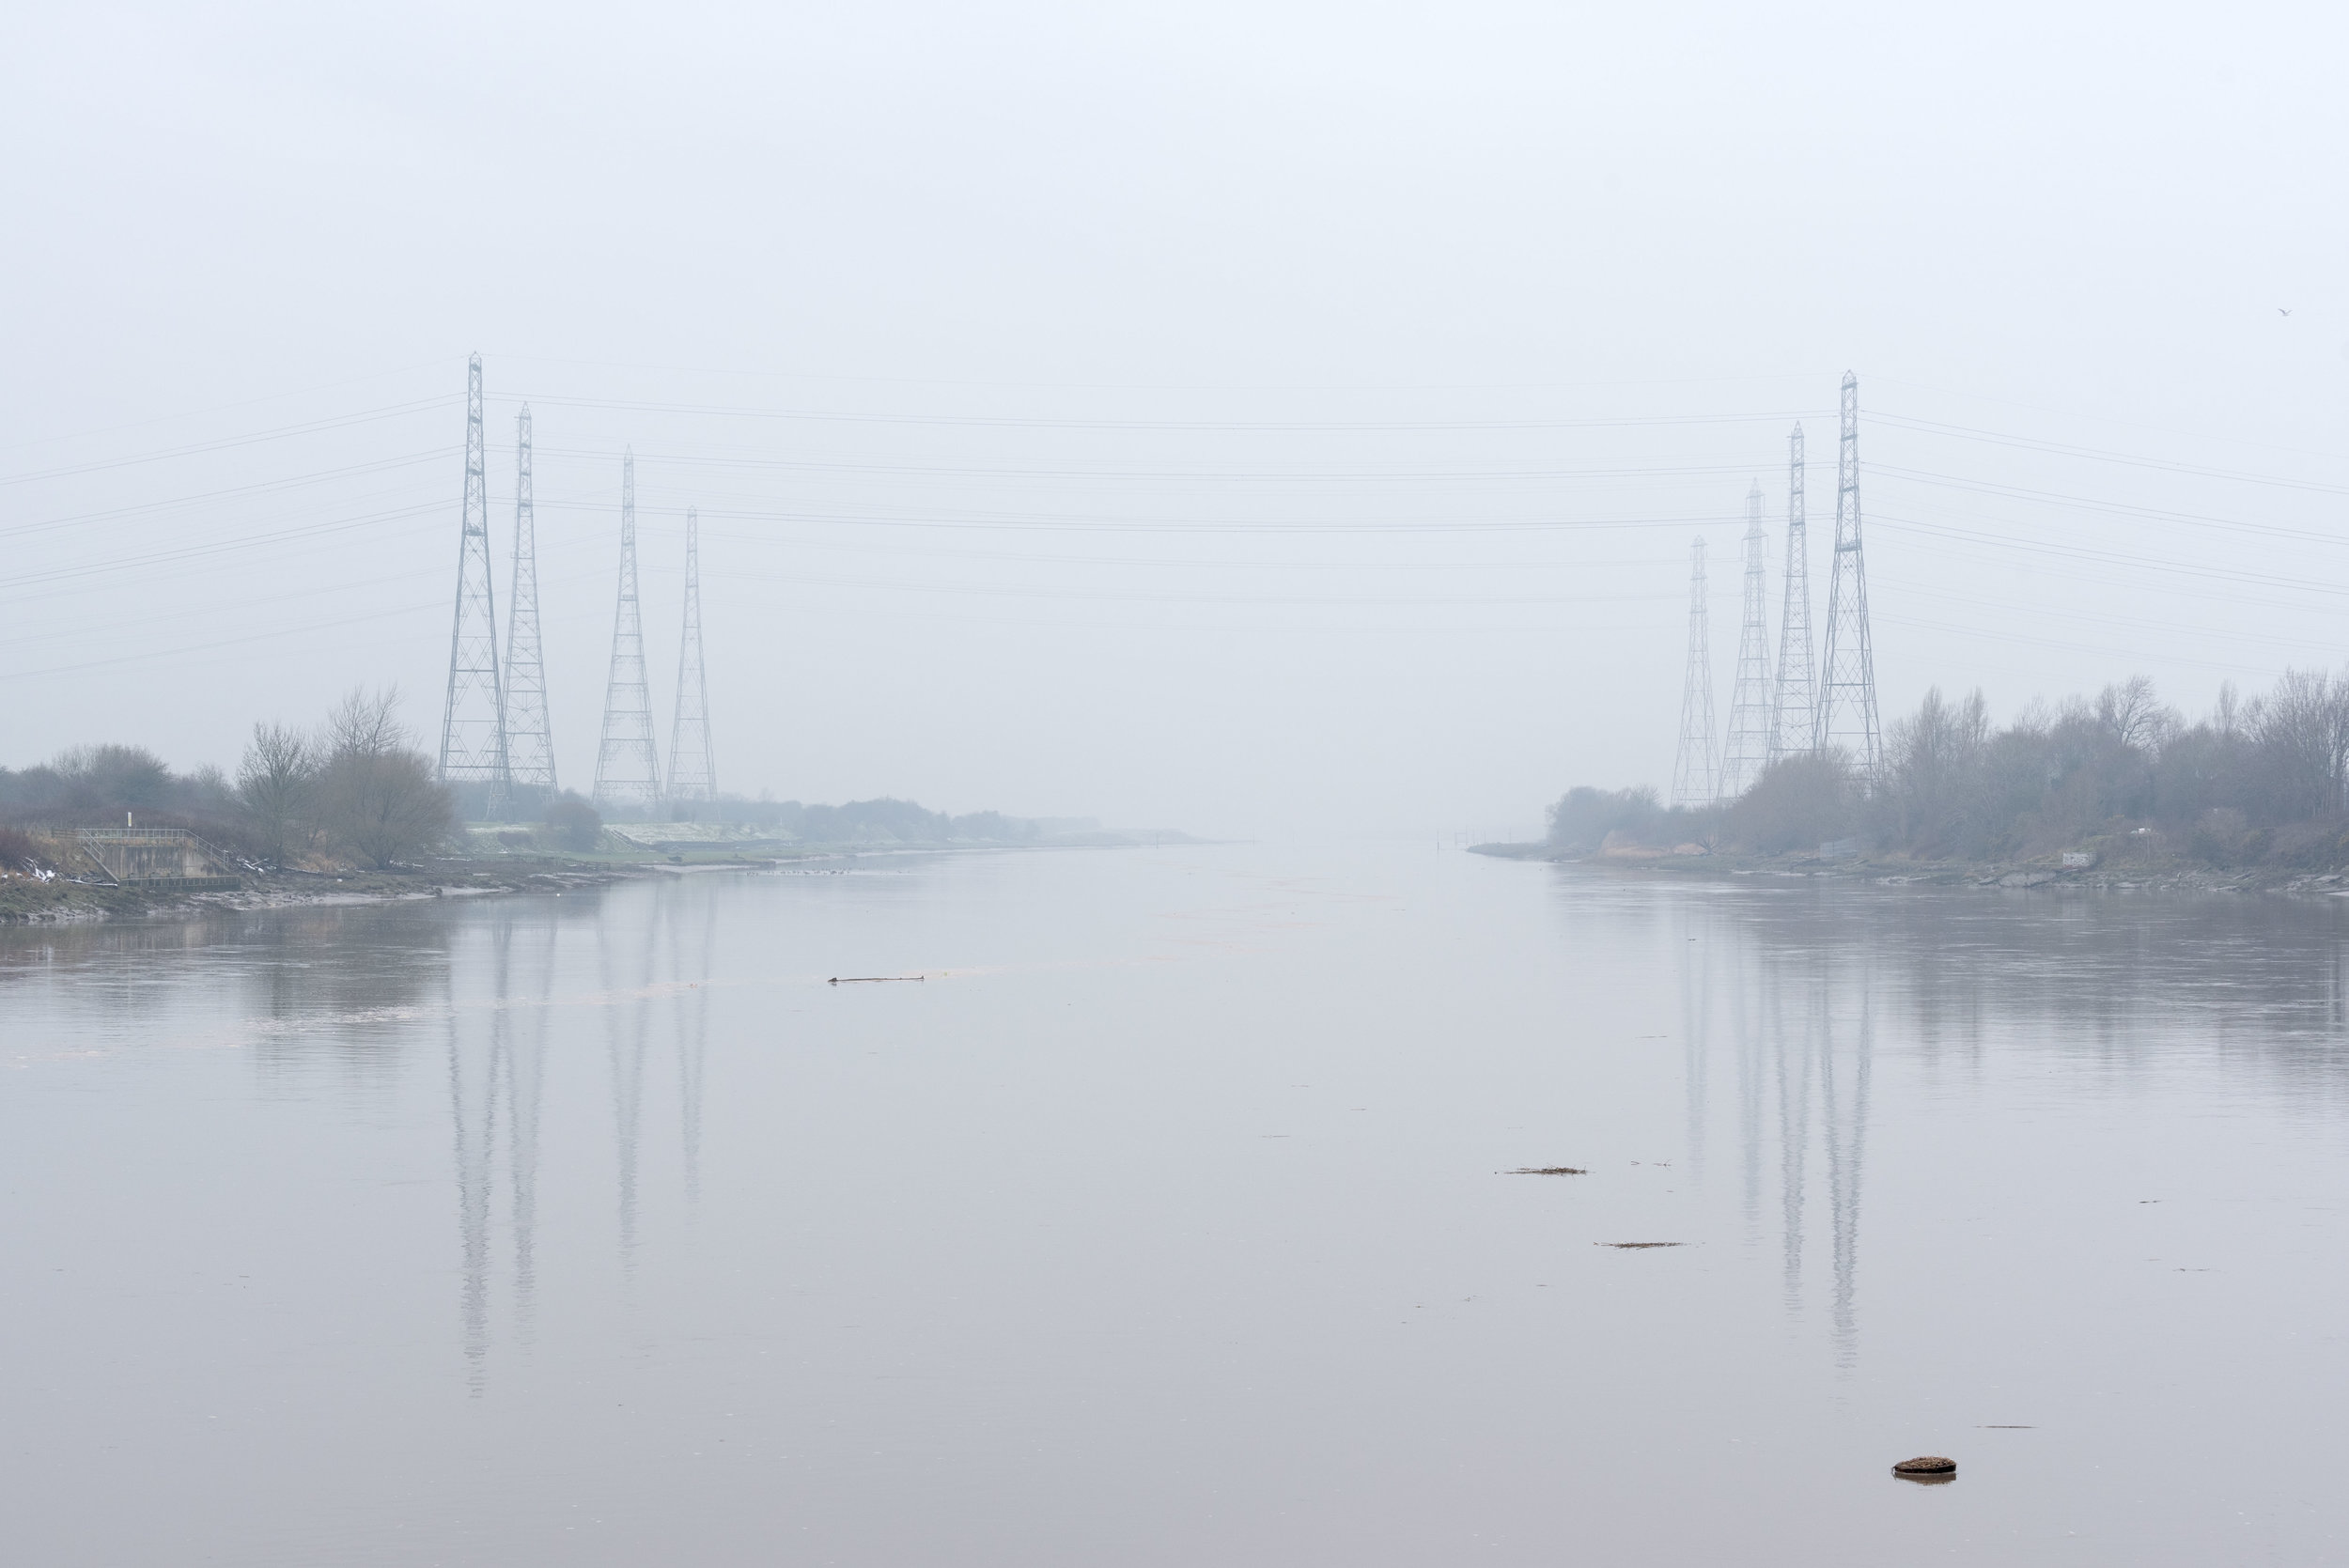 Current - a view downstream of the Ribble as the tide rapidly rises